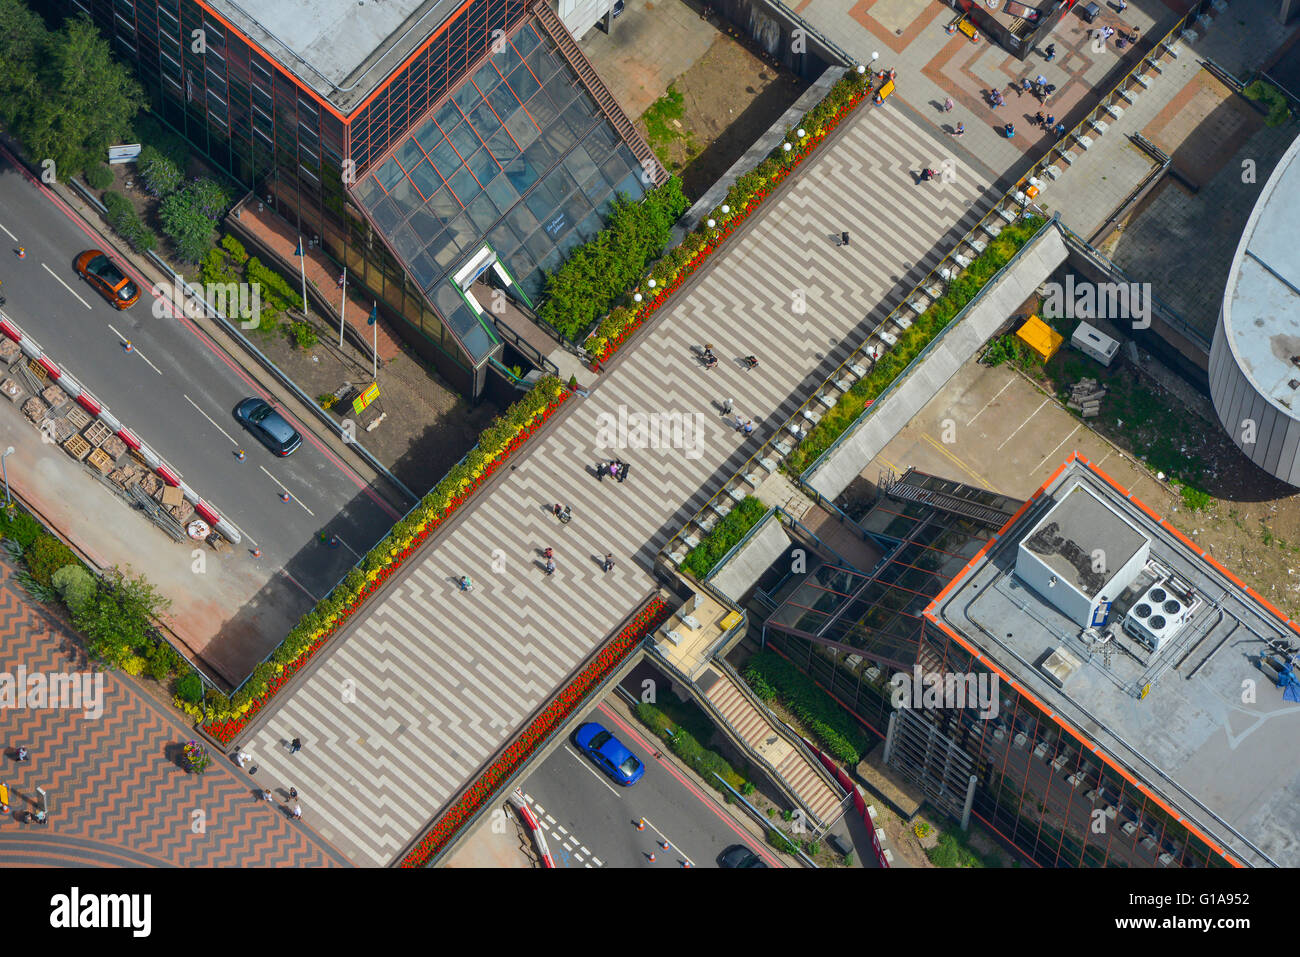 An aerial view of the footbridge over Paradise Circus in the centre of Birmingham - Stock Image